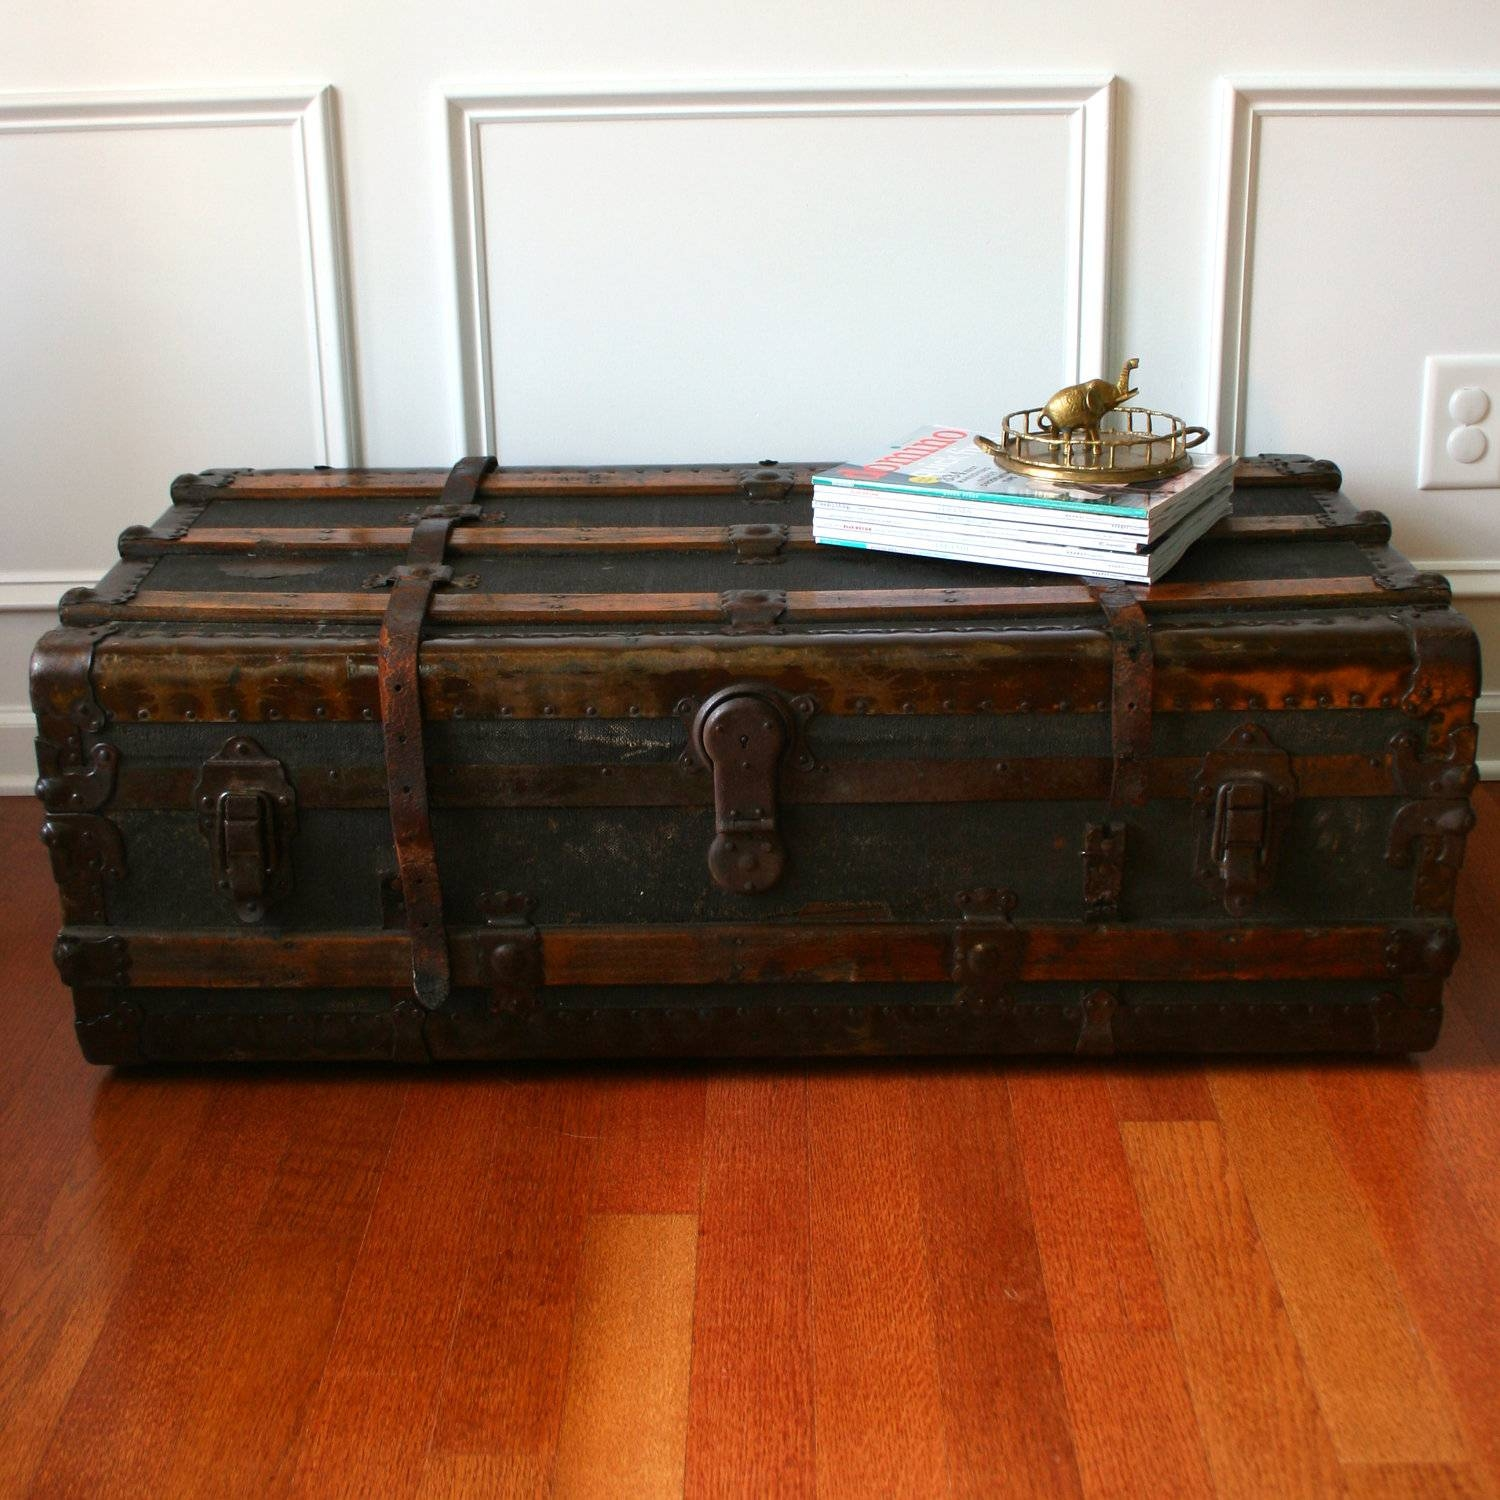 Luggage Trunk Coffee Table | Coffee Tables Decoration With Regard To Steamer Trunk Stainless Steel Coffee Tables (View 14 of 30)